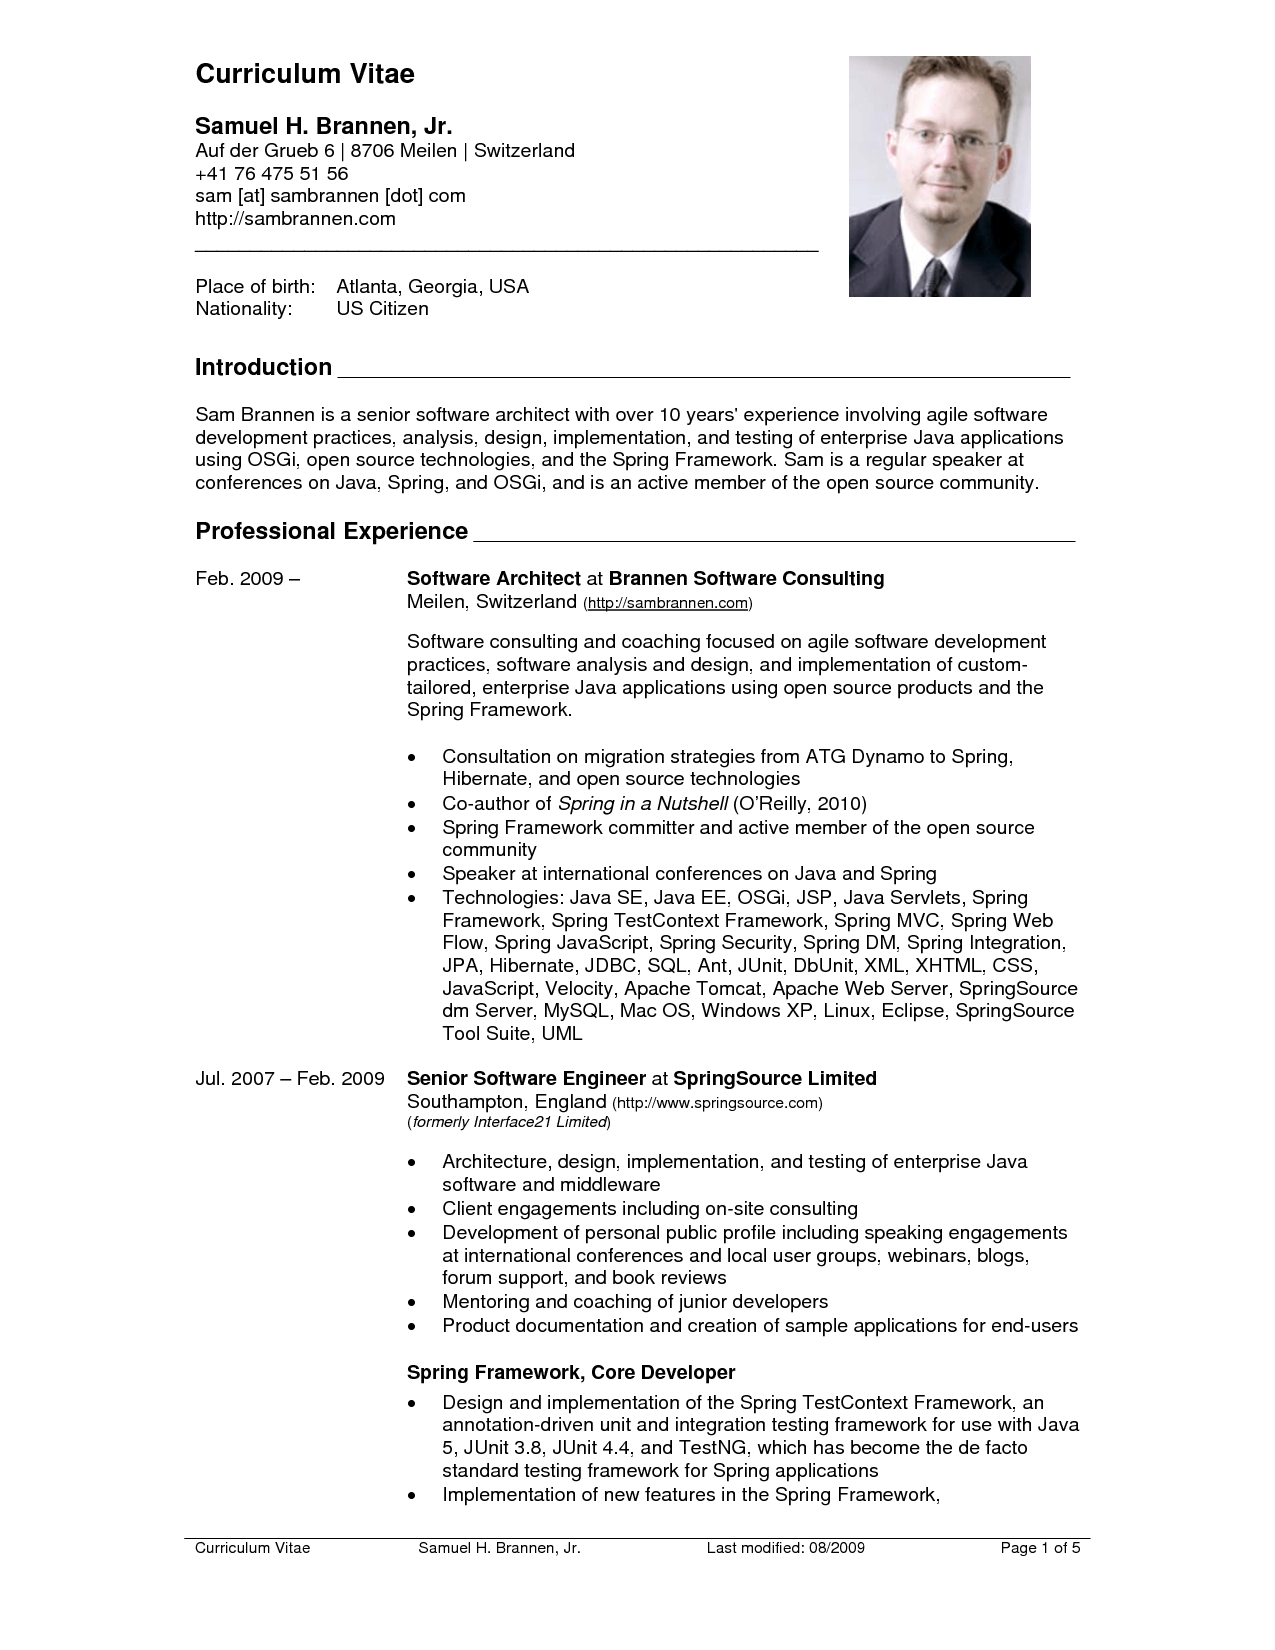 curriculum vitae format accountant resume samples writing curriculum vitae format accountant financial accountant cv template careeroneau curriculum vitae samples templates and formats ready